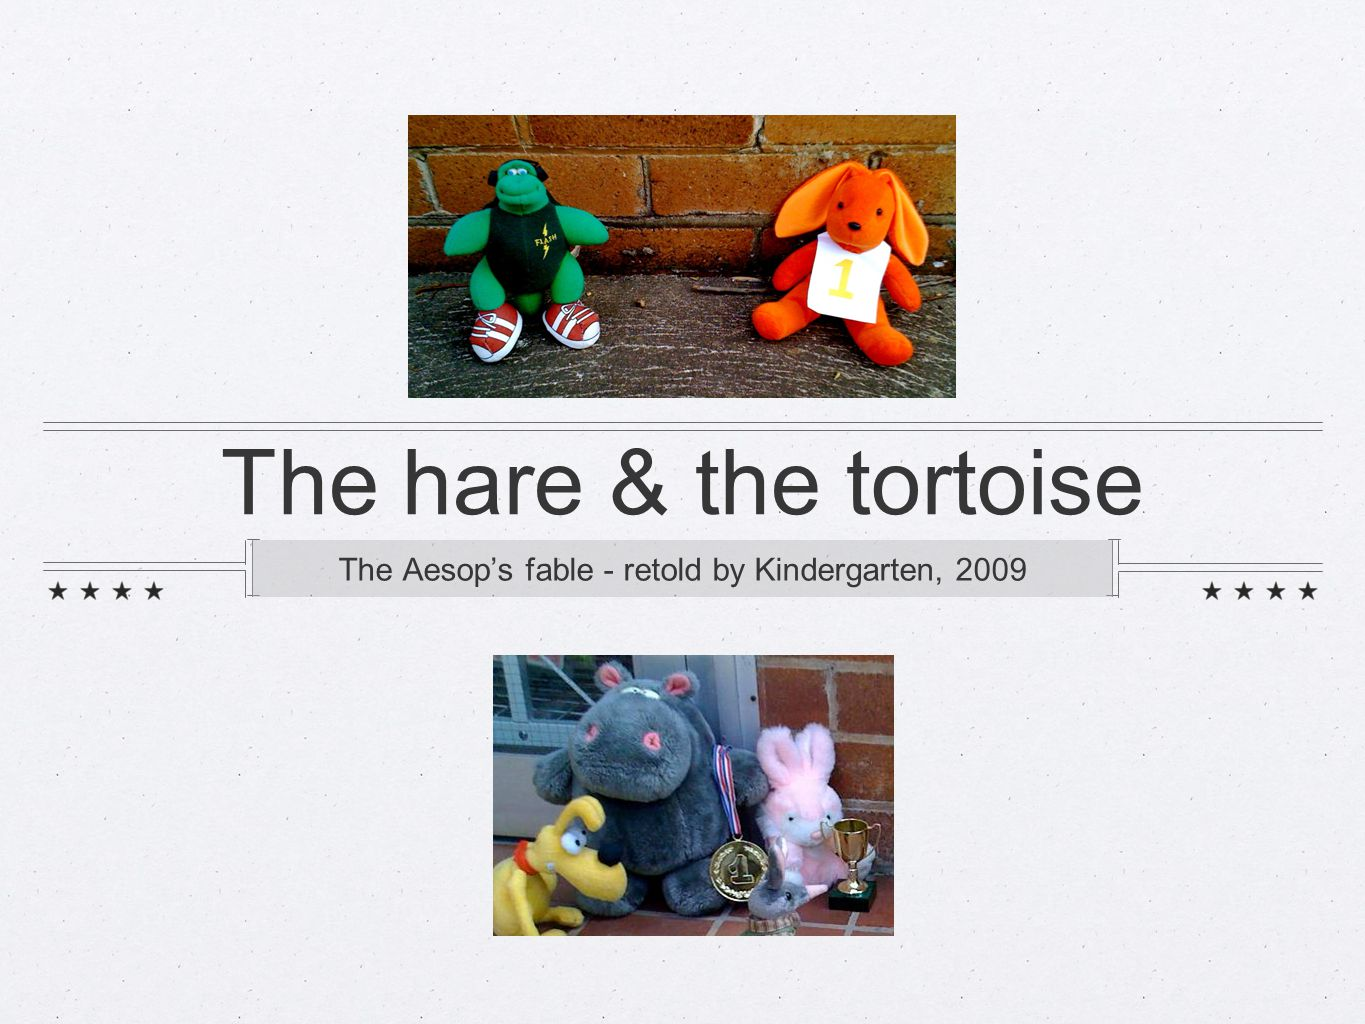 Once upon a time there was a hare and a tortoise..